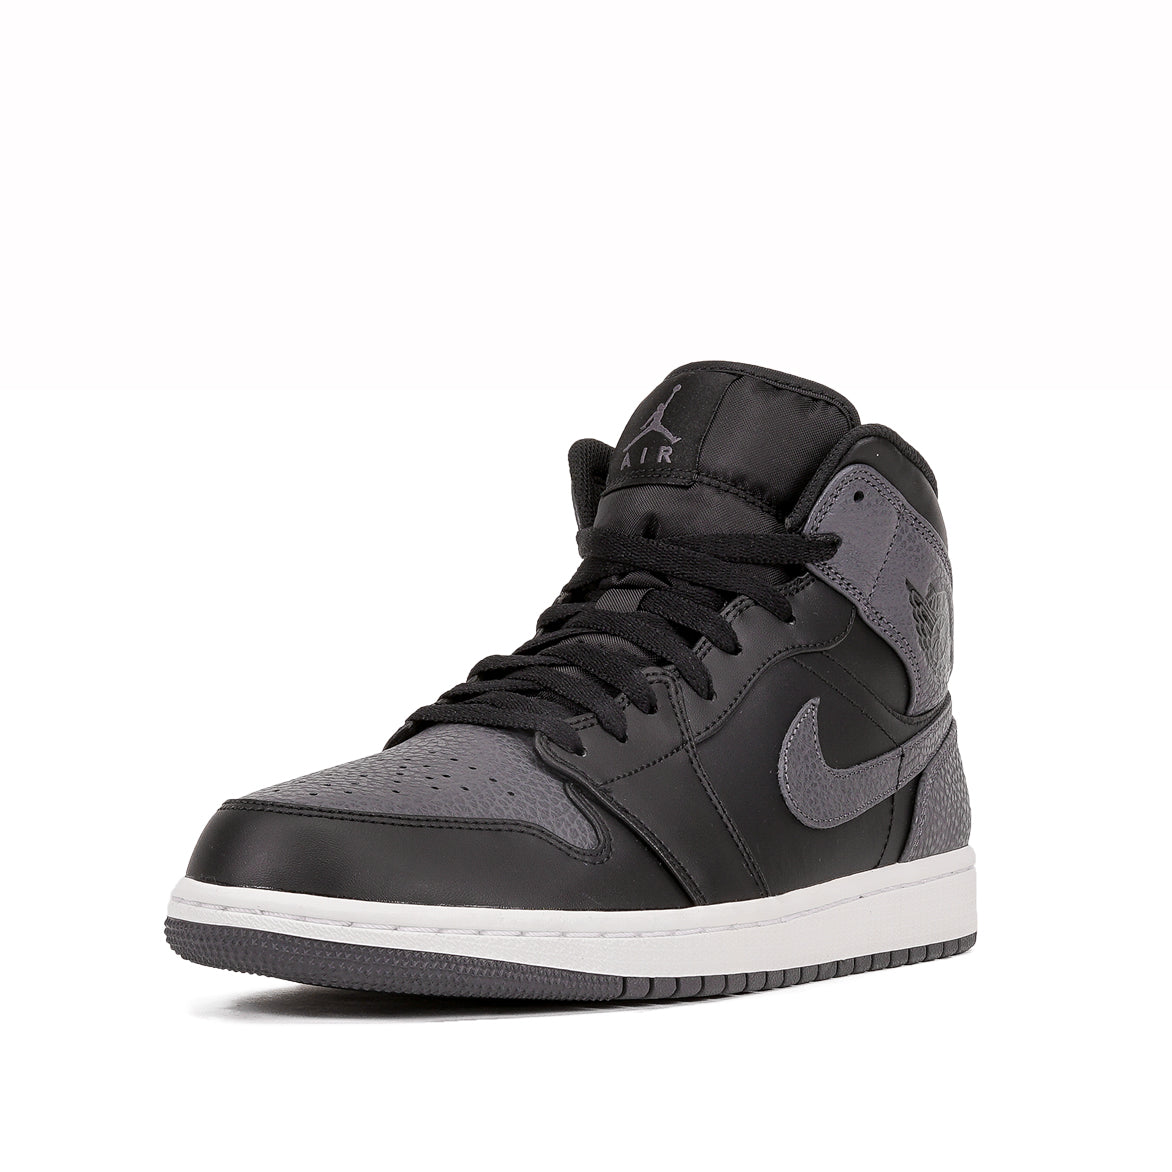 air jordan 1 mid gray